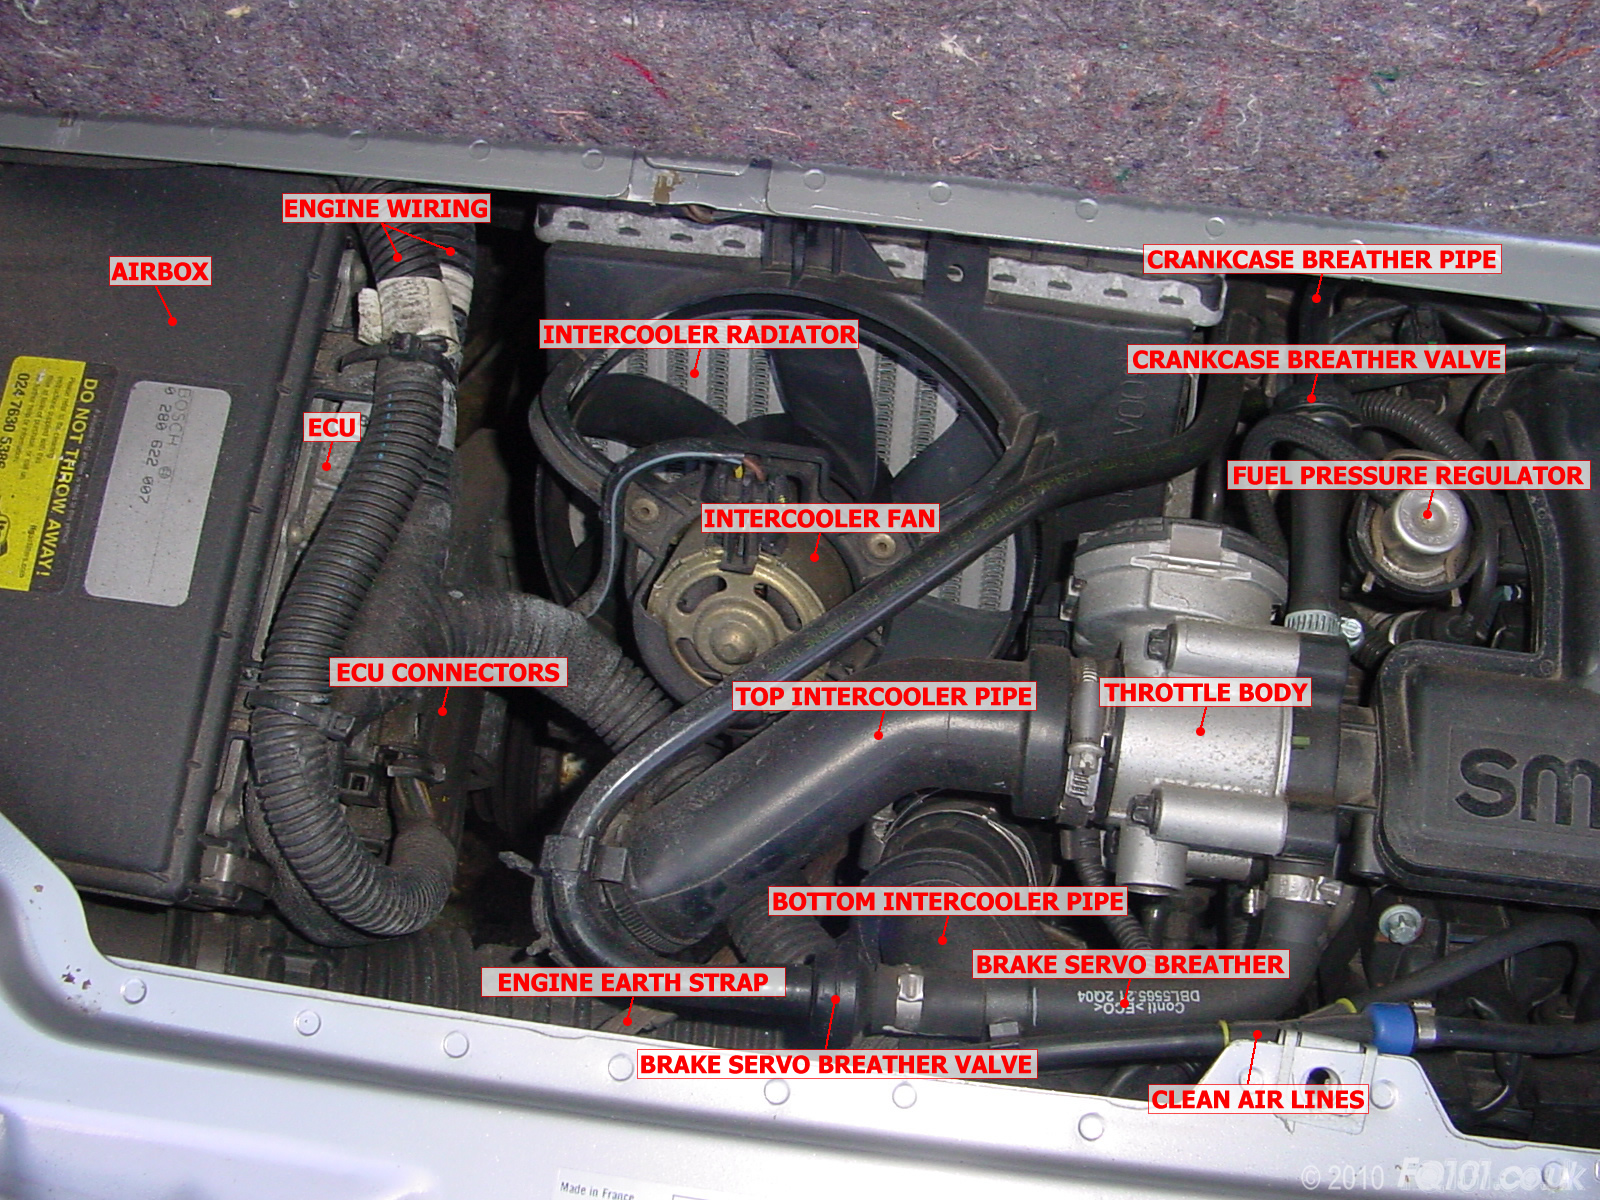 Identifying engine components